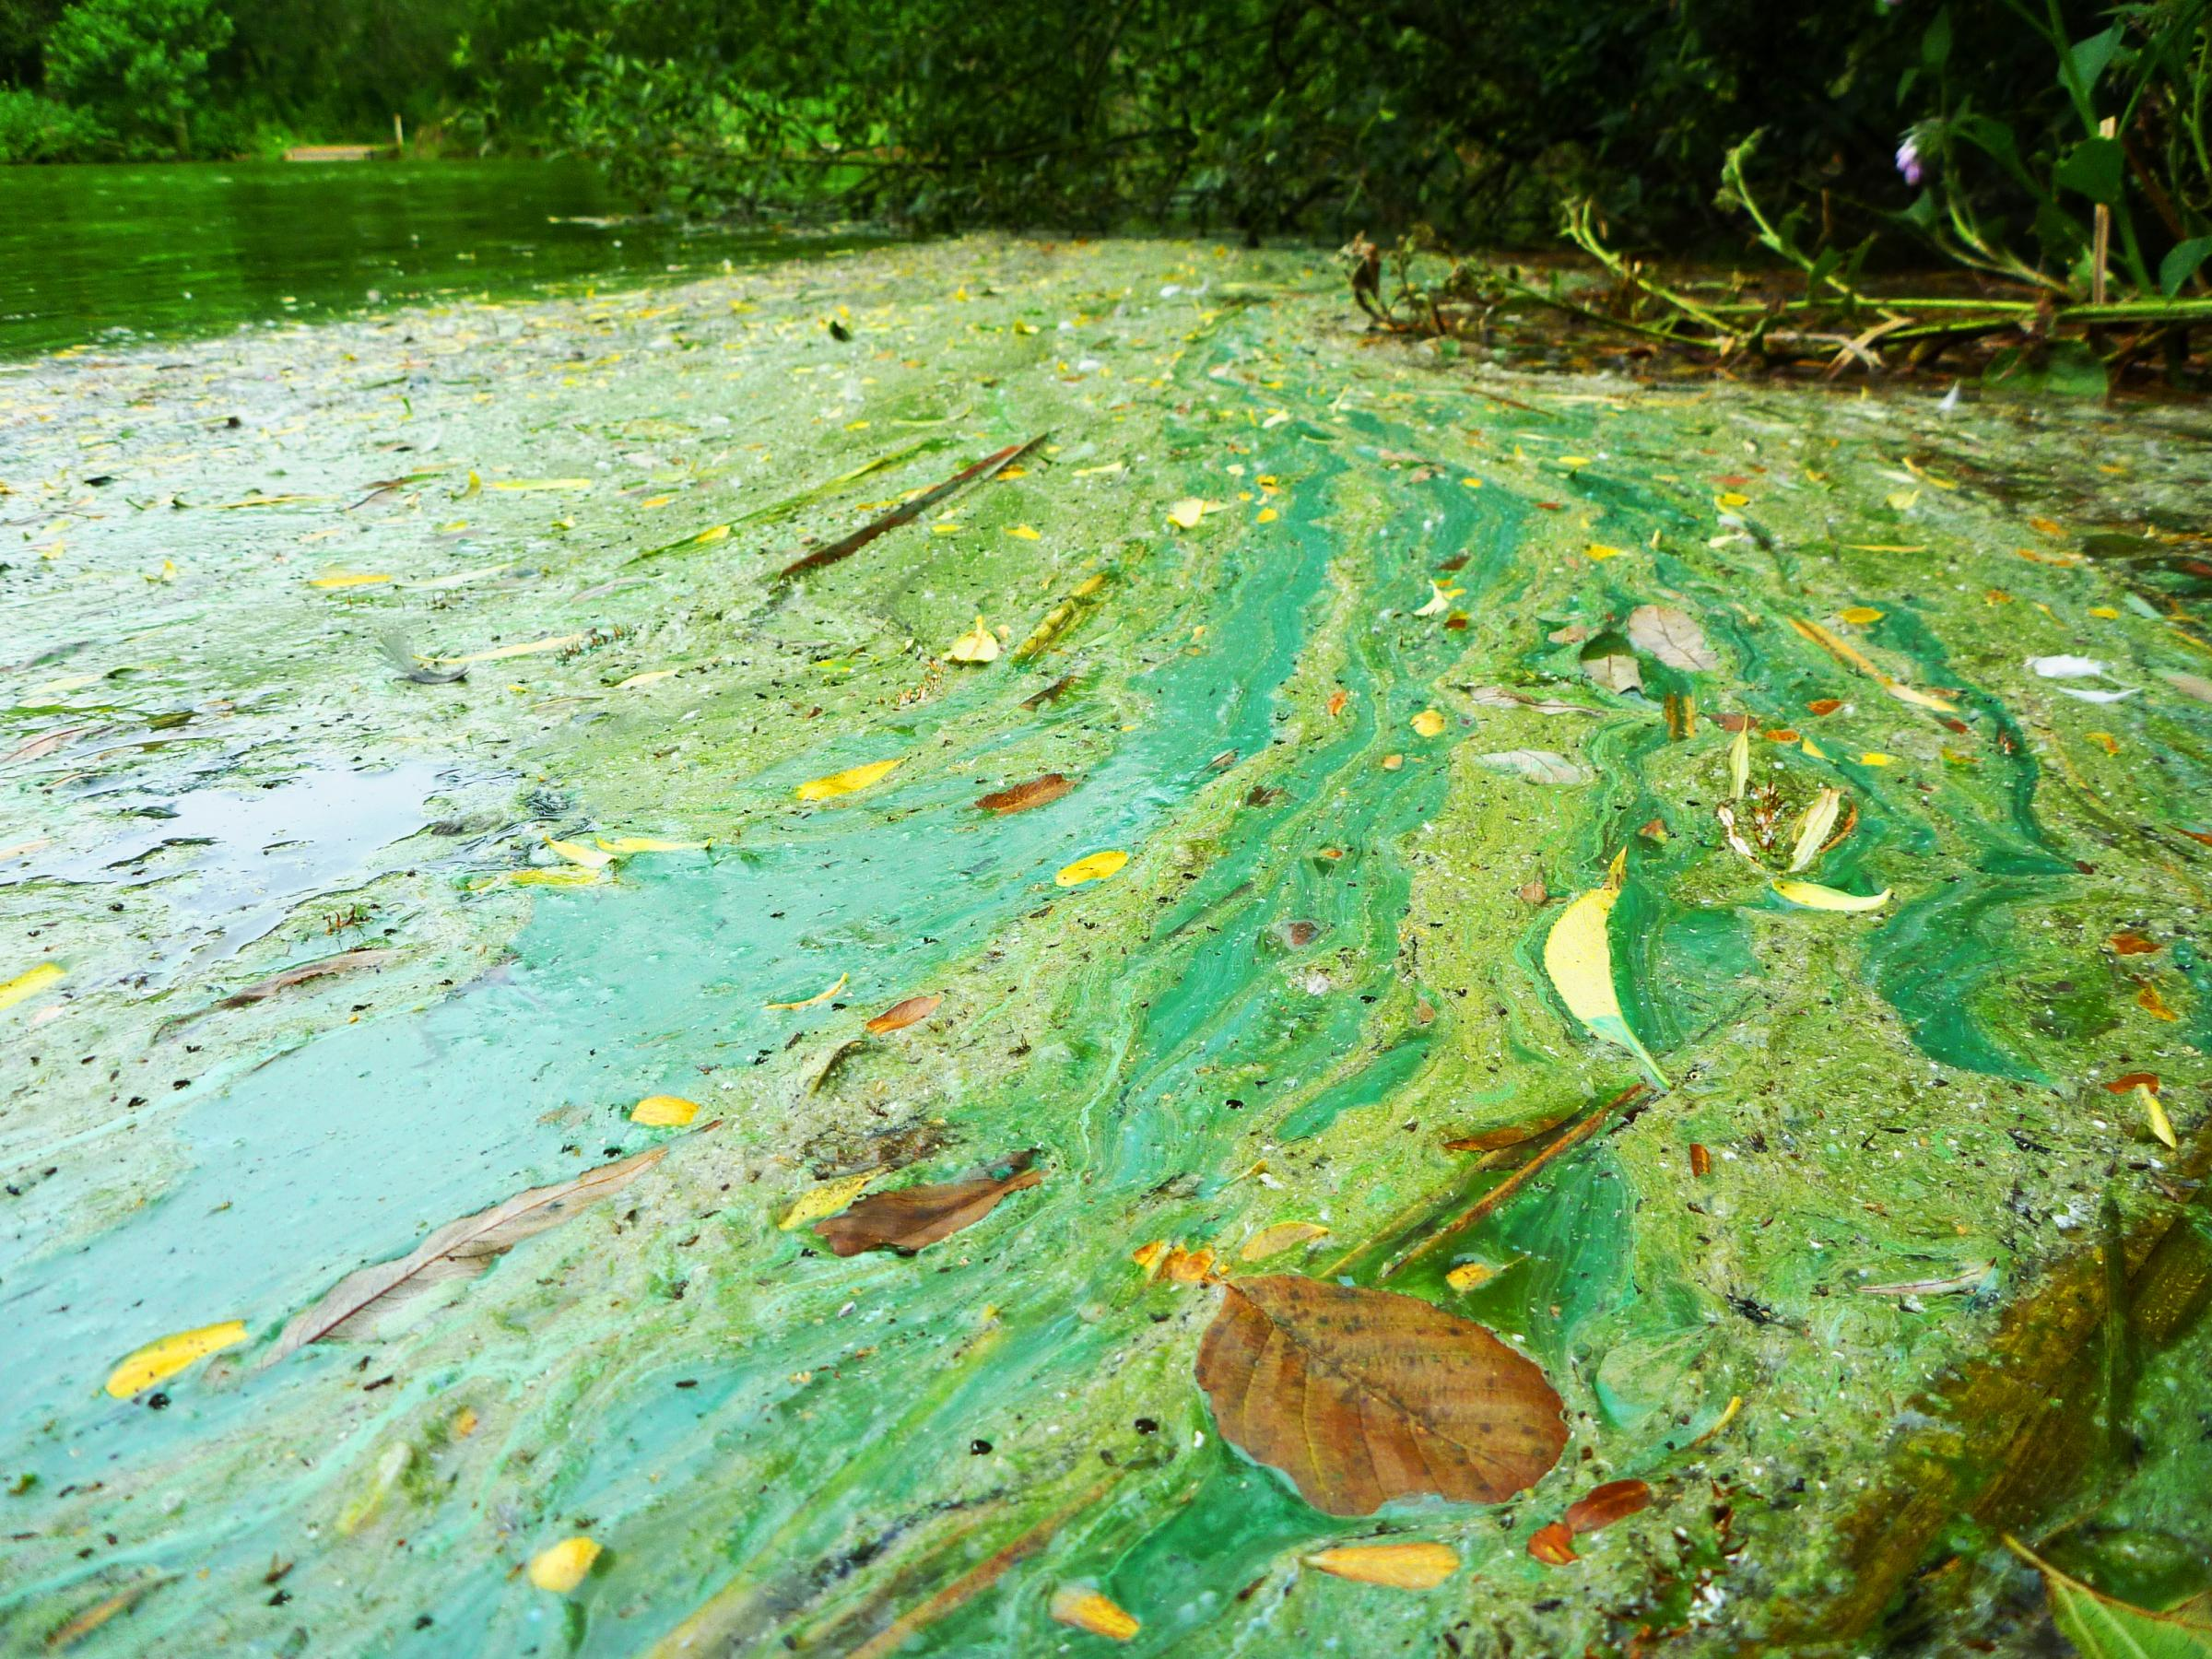 An extreme example of the algae. Picture supplied by the Environment Agency